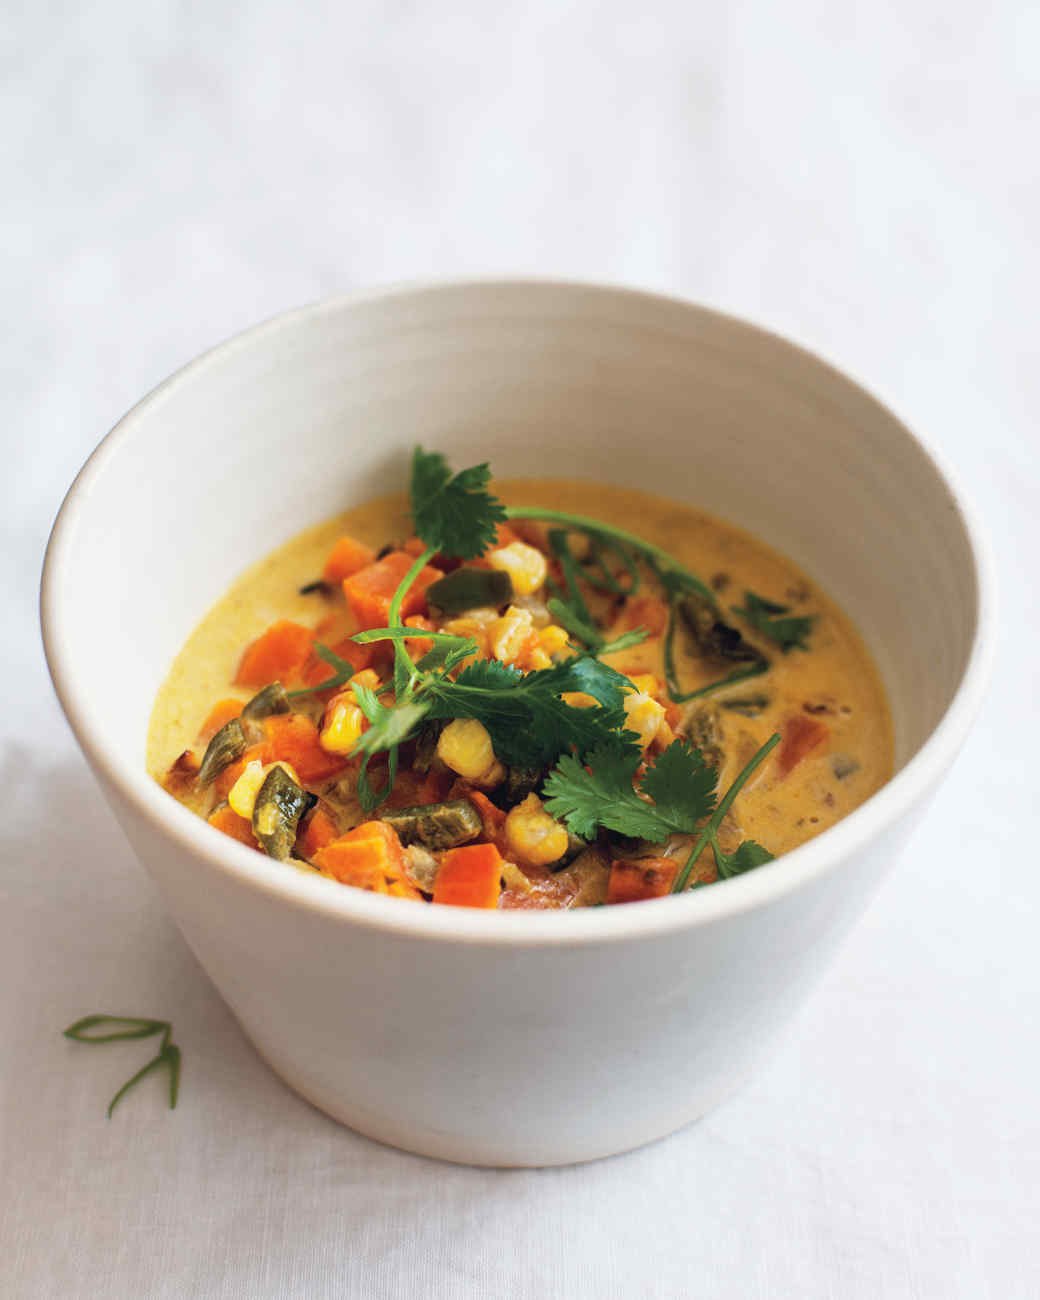 sweet-potato-soup-mbs109492.jpg